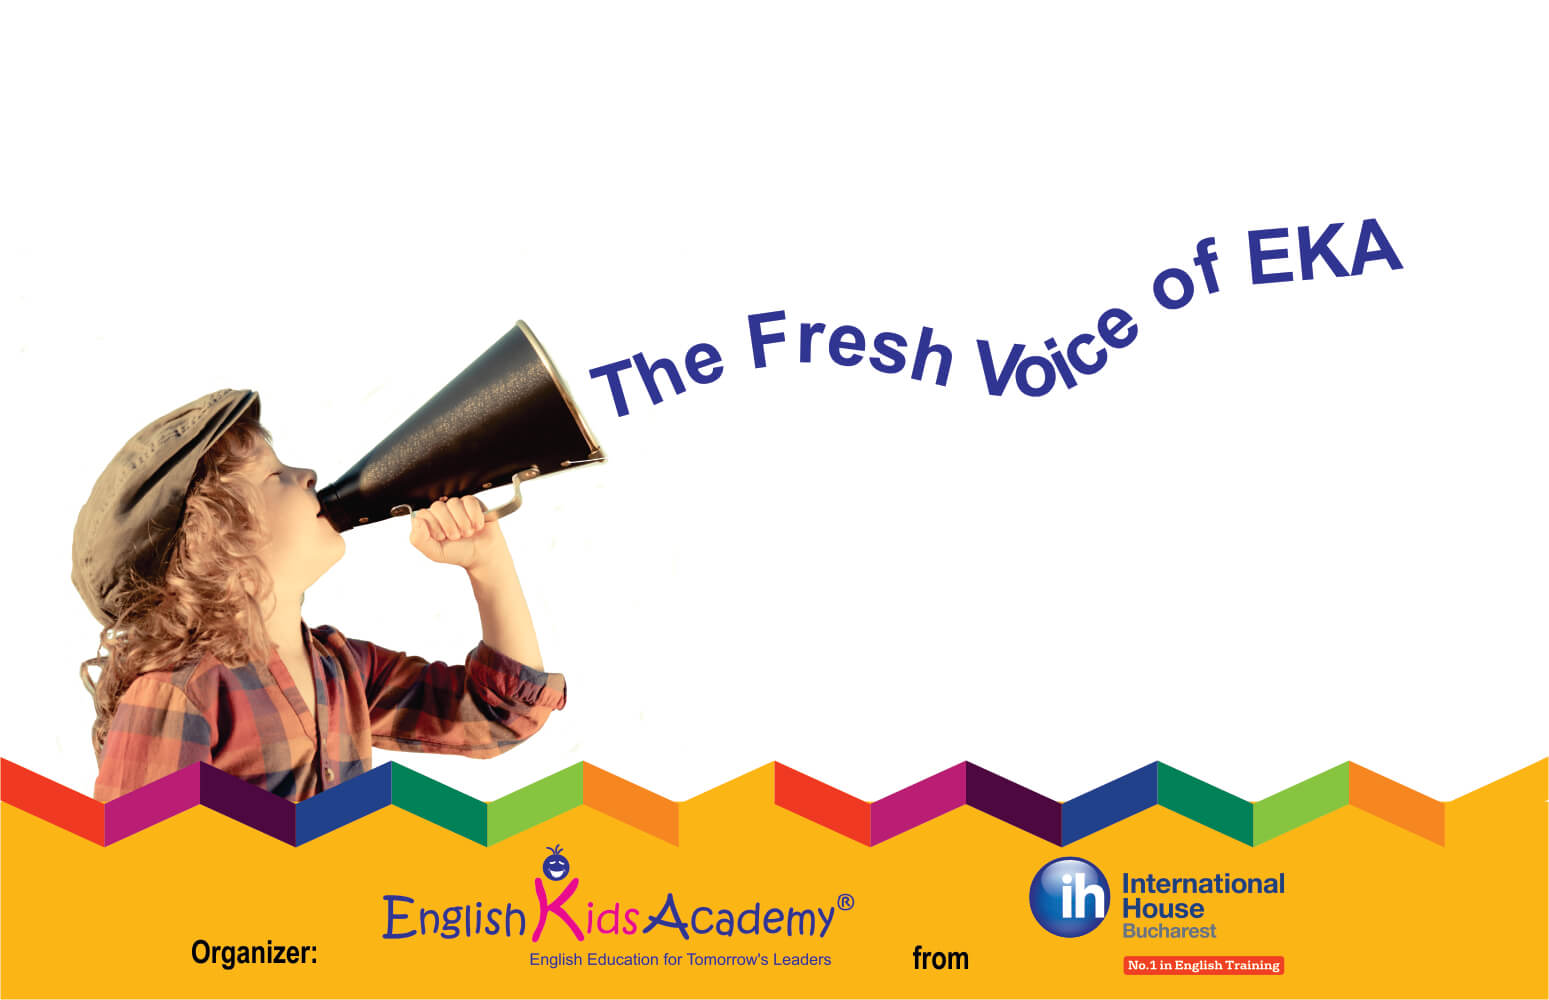 The Fresh voice of EKA 2017